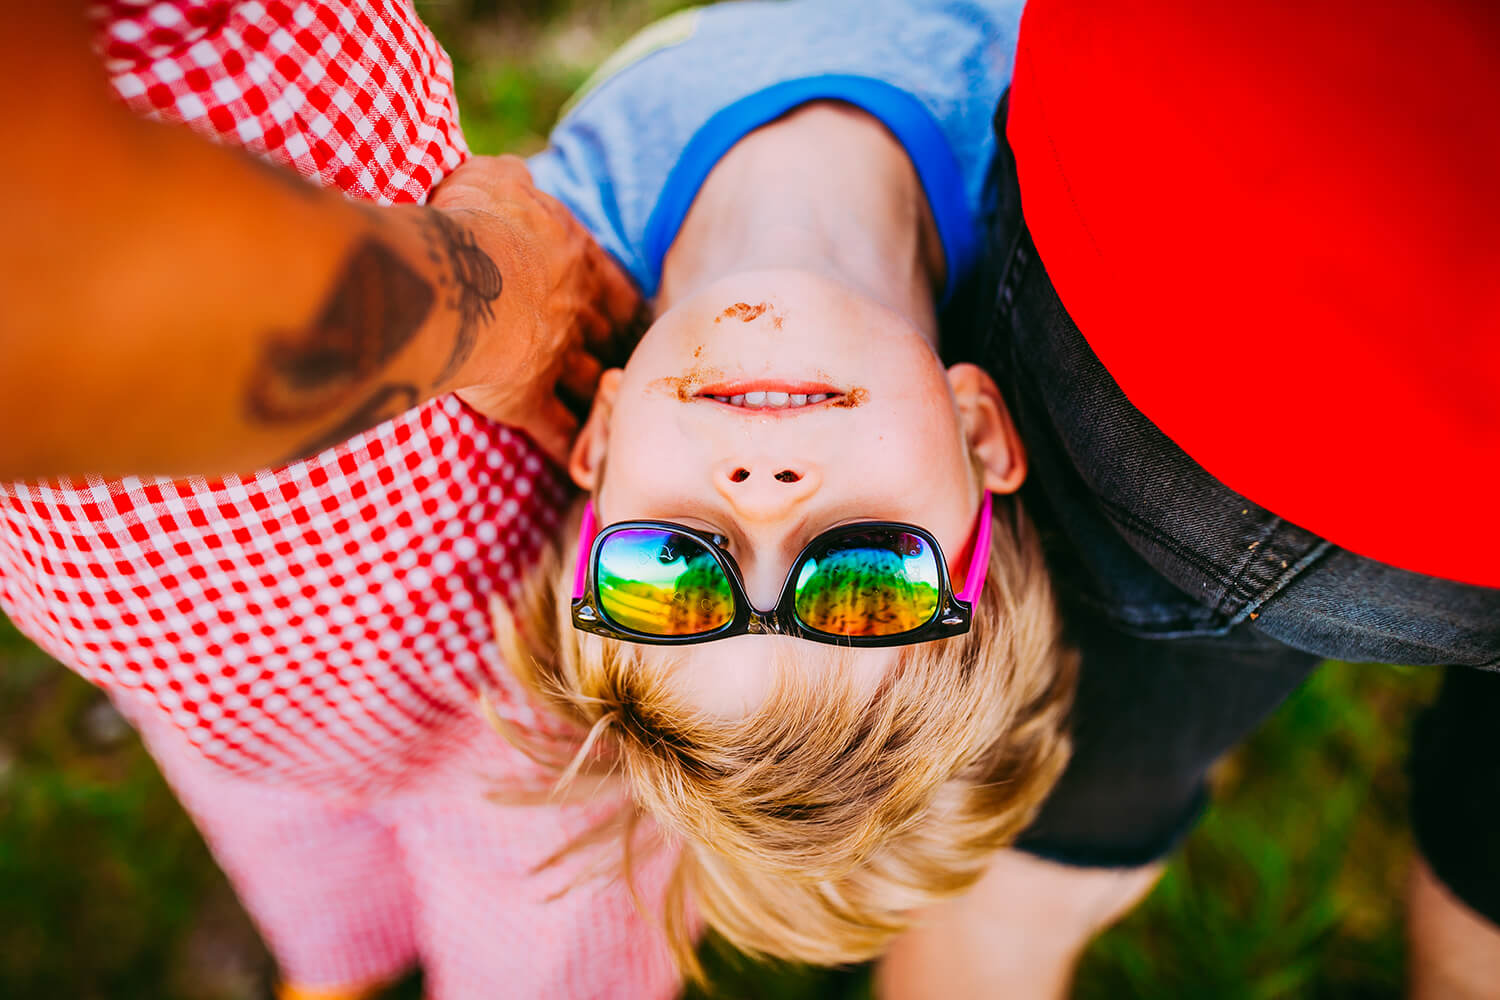 Boy in sunglasses looking at camera upside down